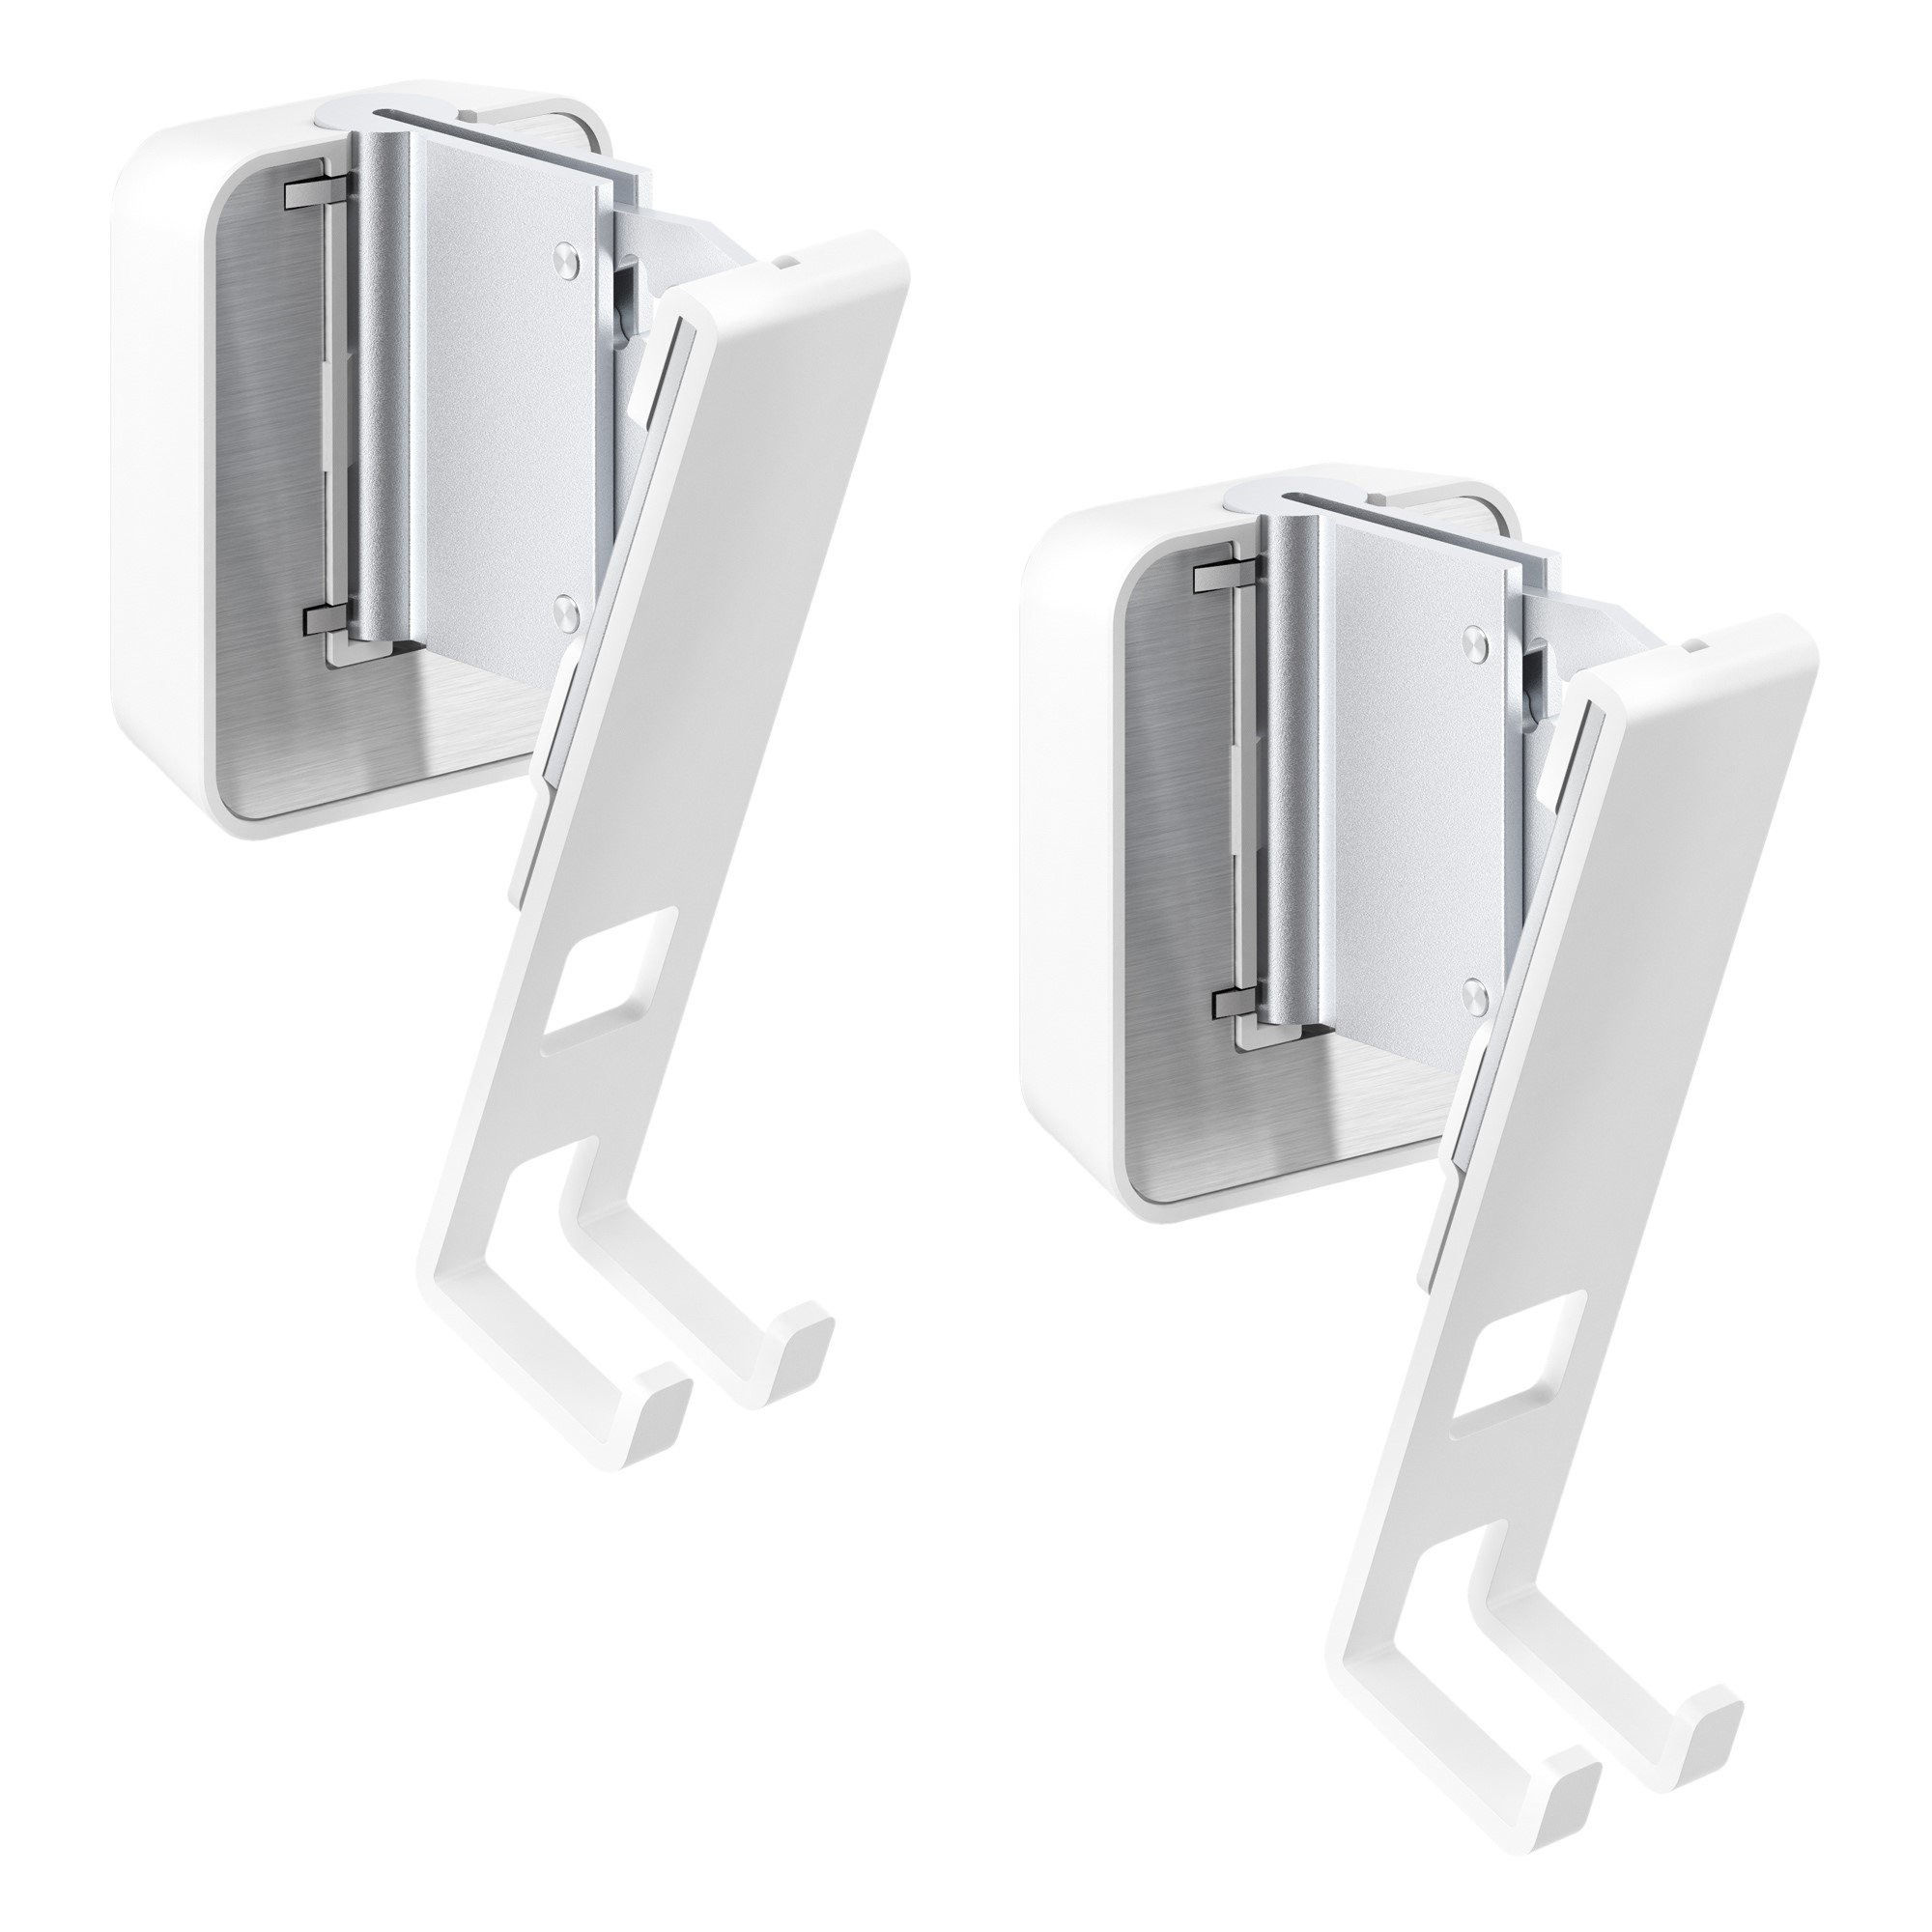 Vogel's Speaker Wall Mount for SONOS Play - SOUND 4201 W for Play 1, White (double pack) by Vogel's